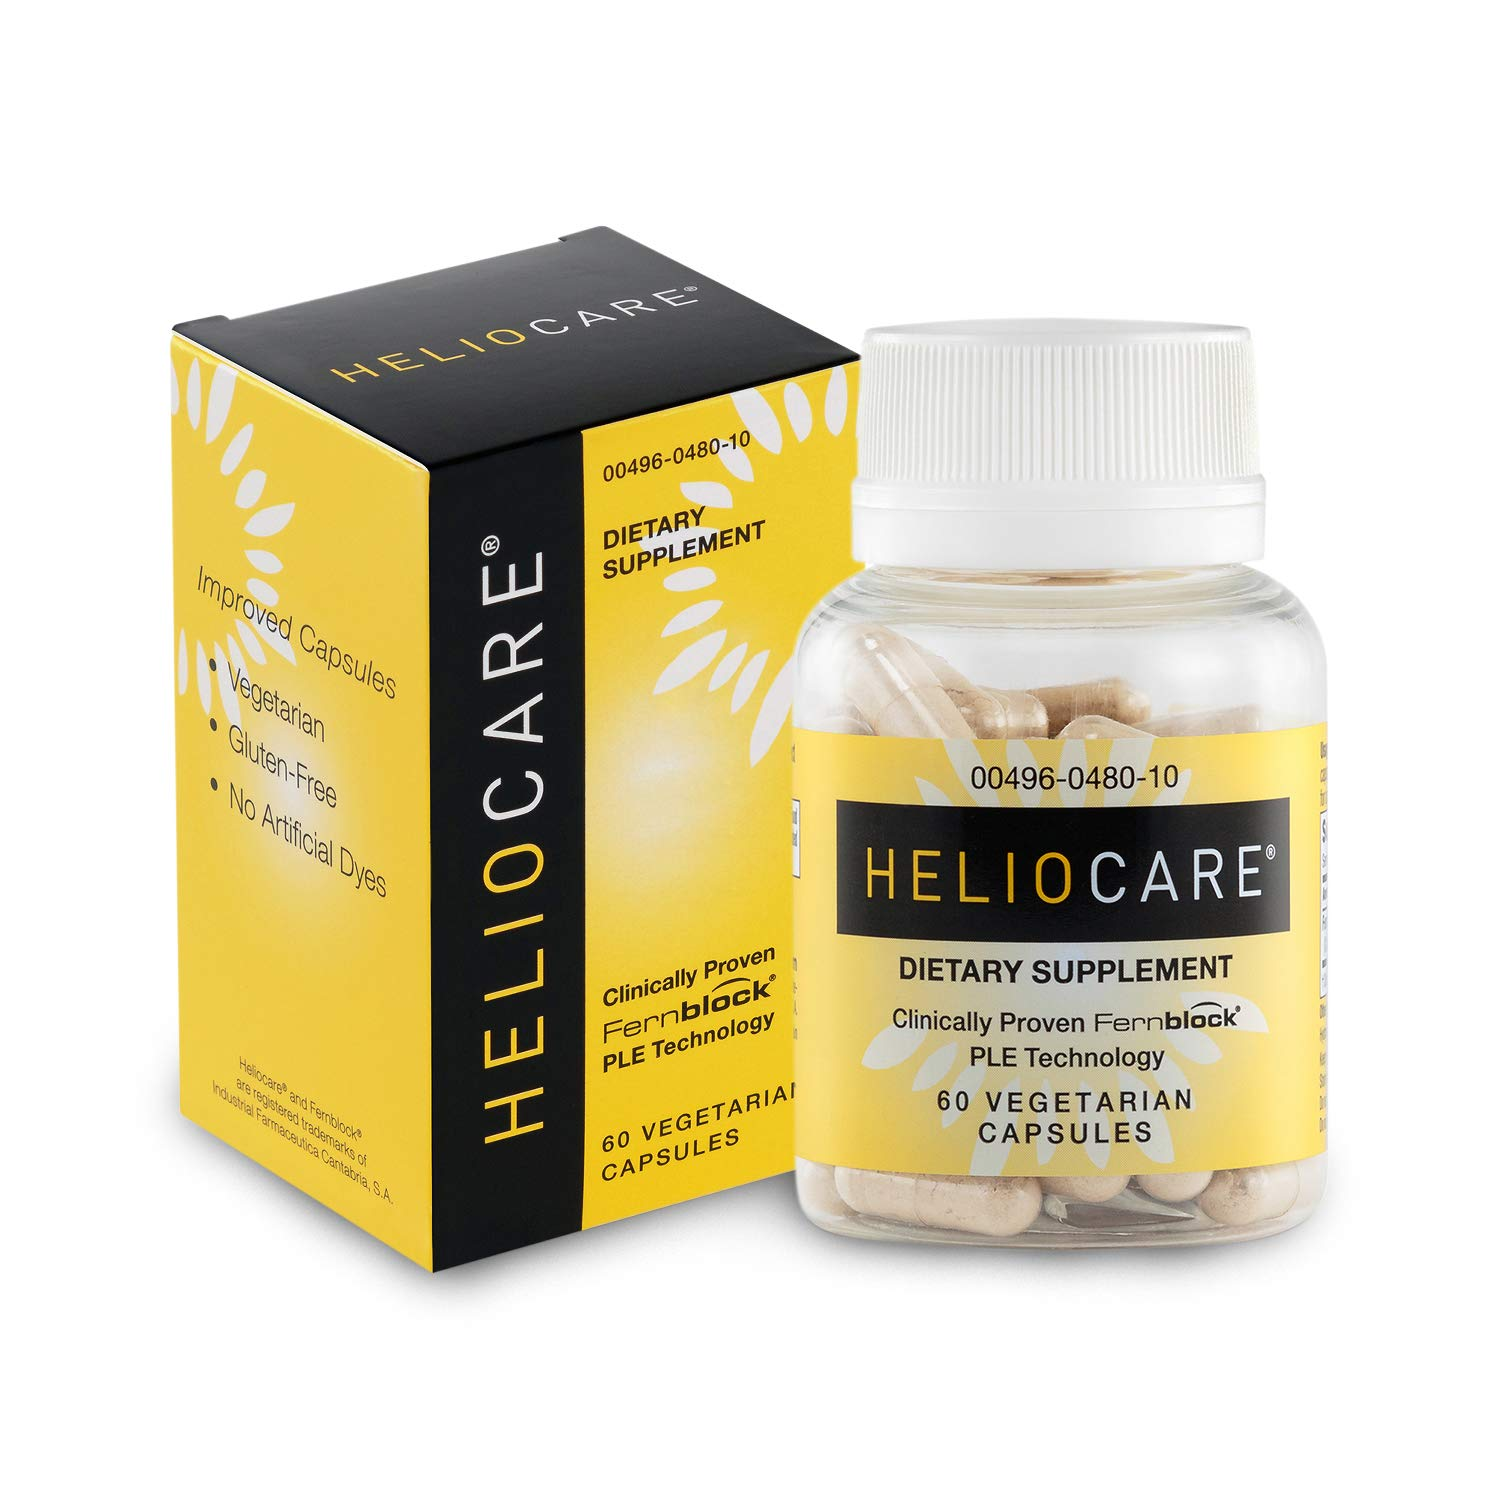 Heliocare Skin Care Dietary Supplement 240mg Polypodium Leucotomos Extract Pills – Antioxidant Rich Formula with Fernblock and PLE Technology – 60 Veggie Capsules